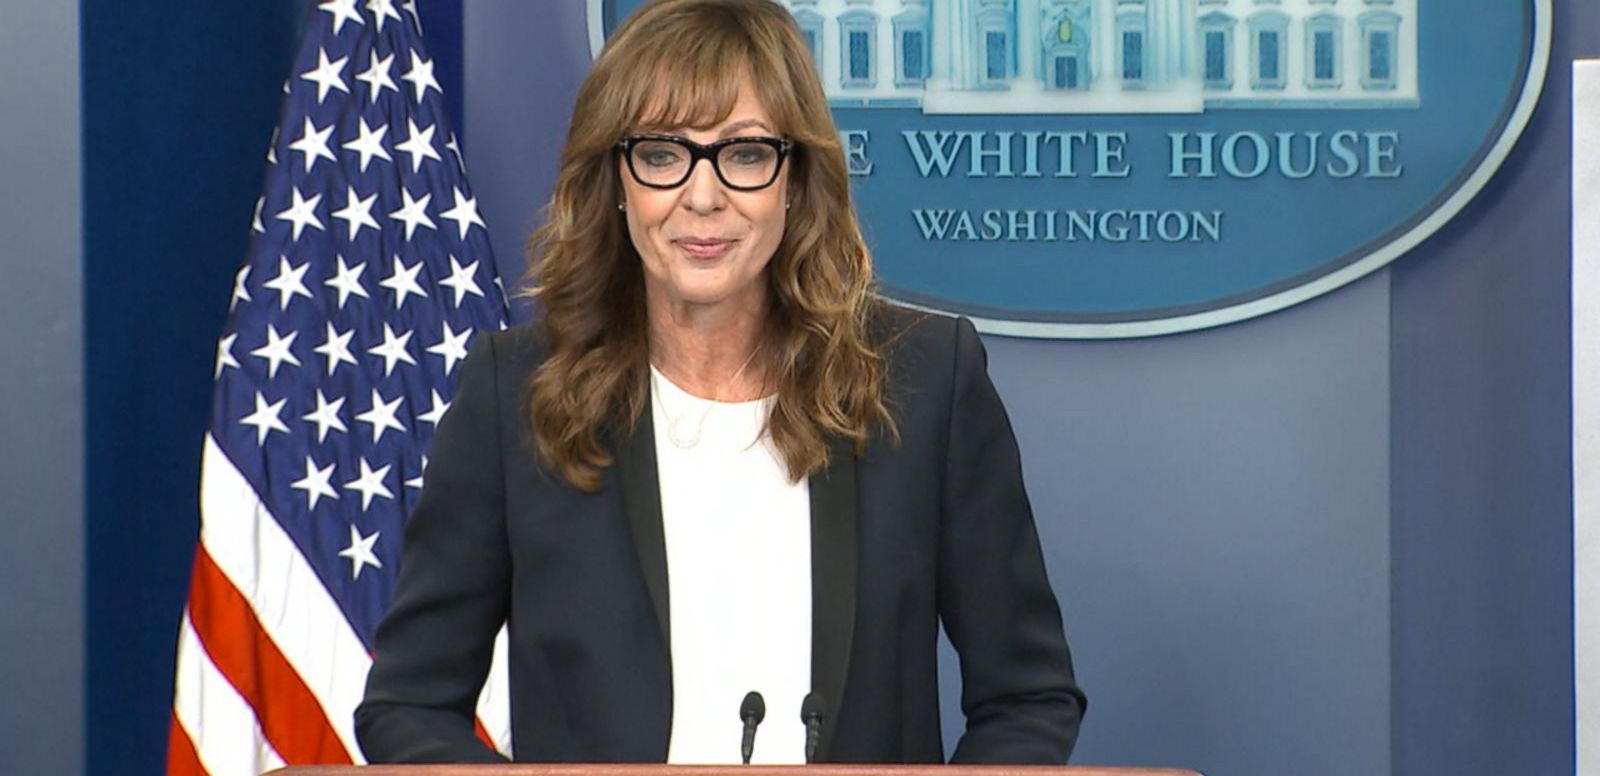 VIDEO: Allison Janney Stops By White House Press Briefing as CJ Cregg